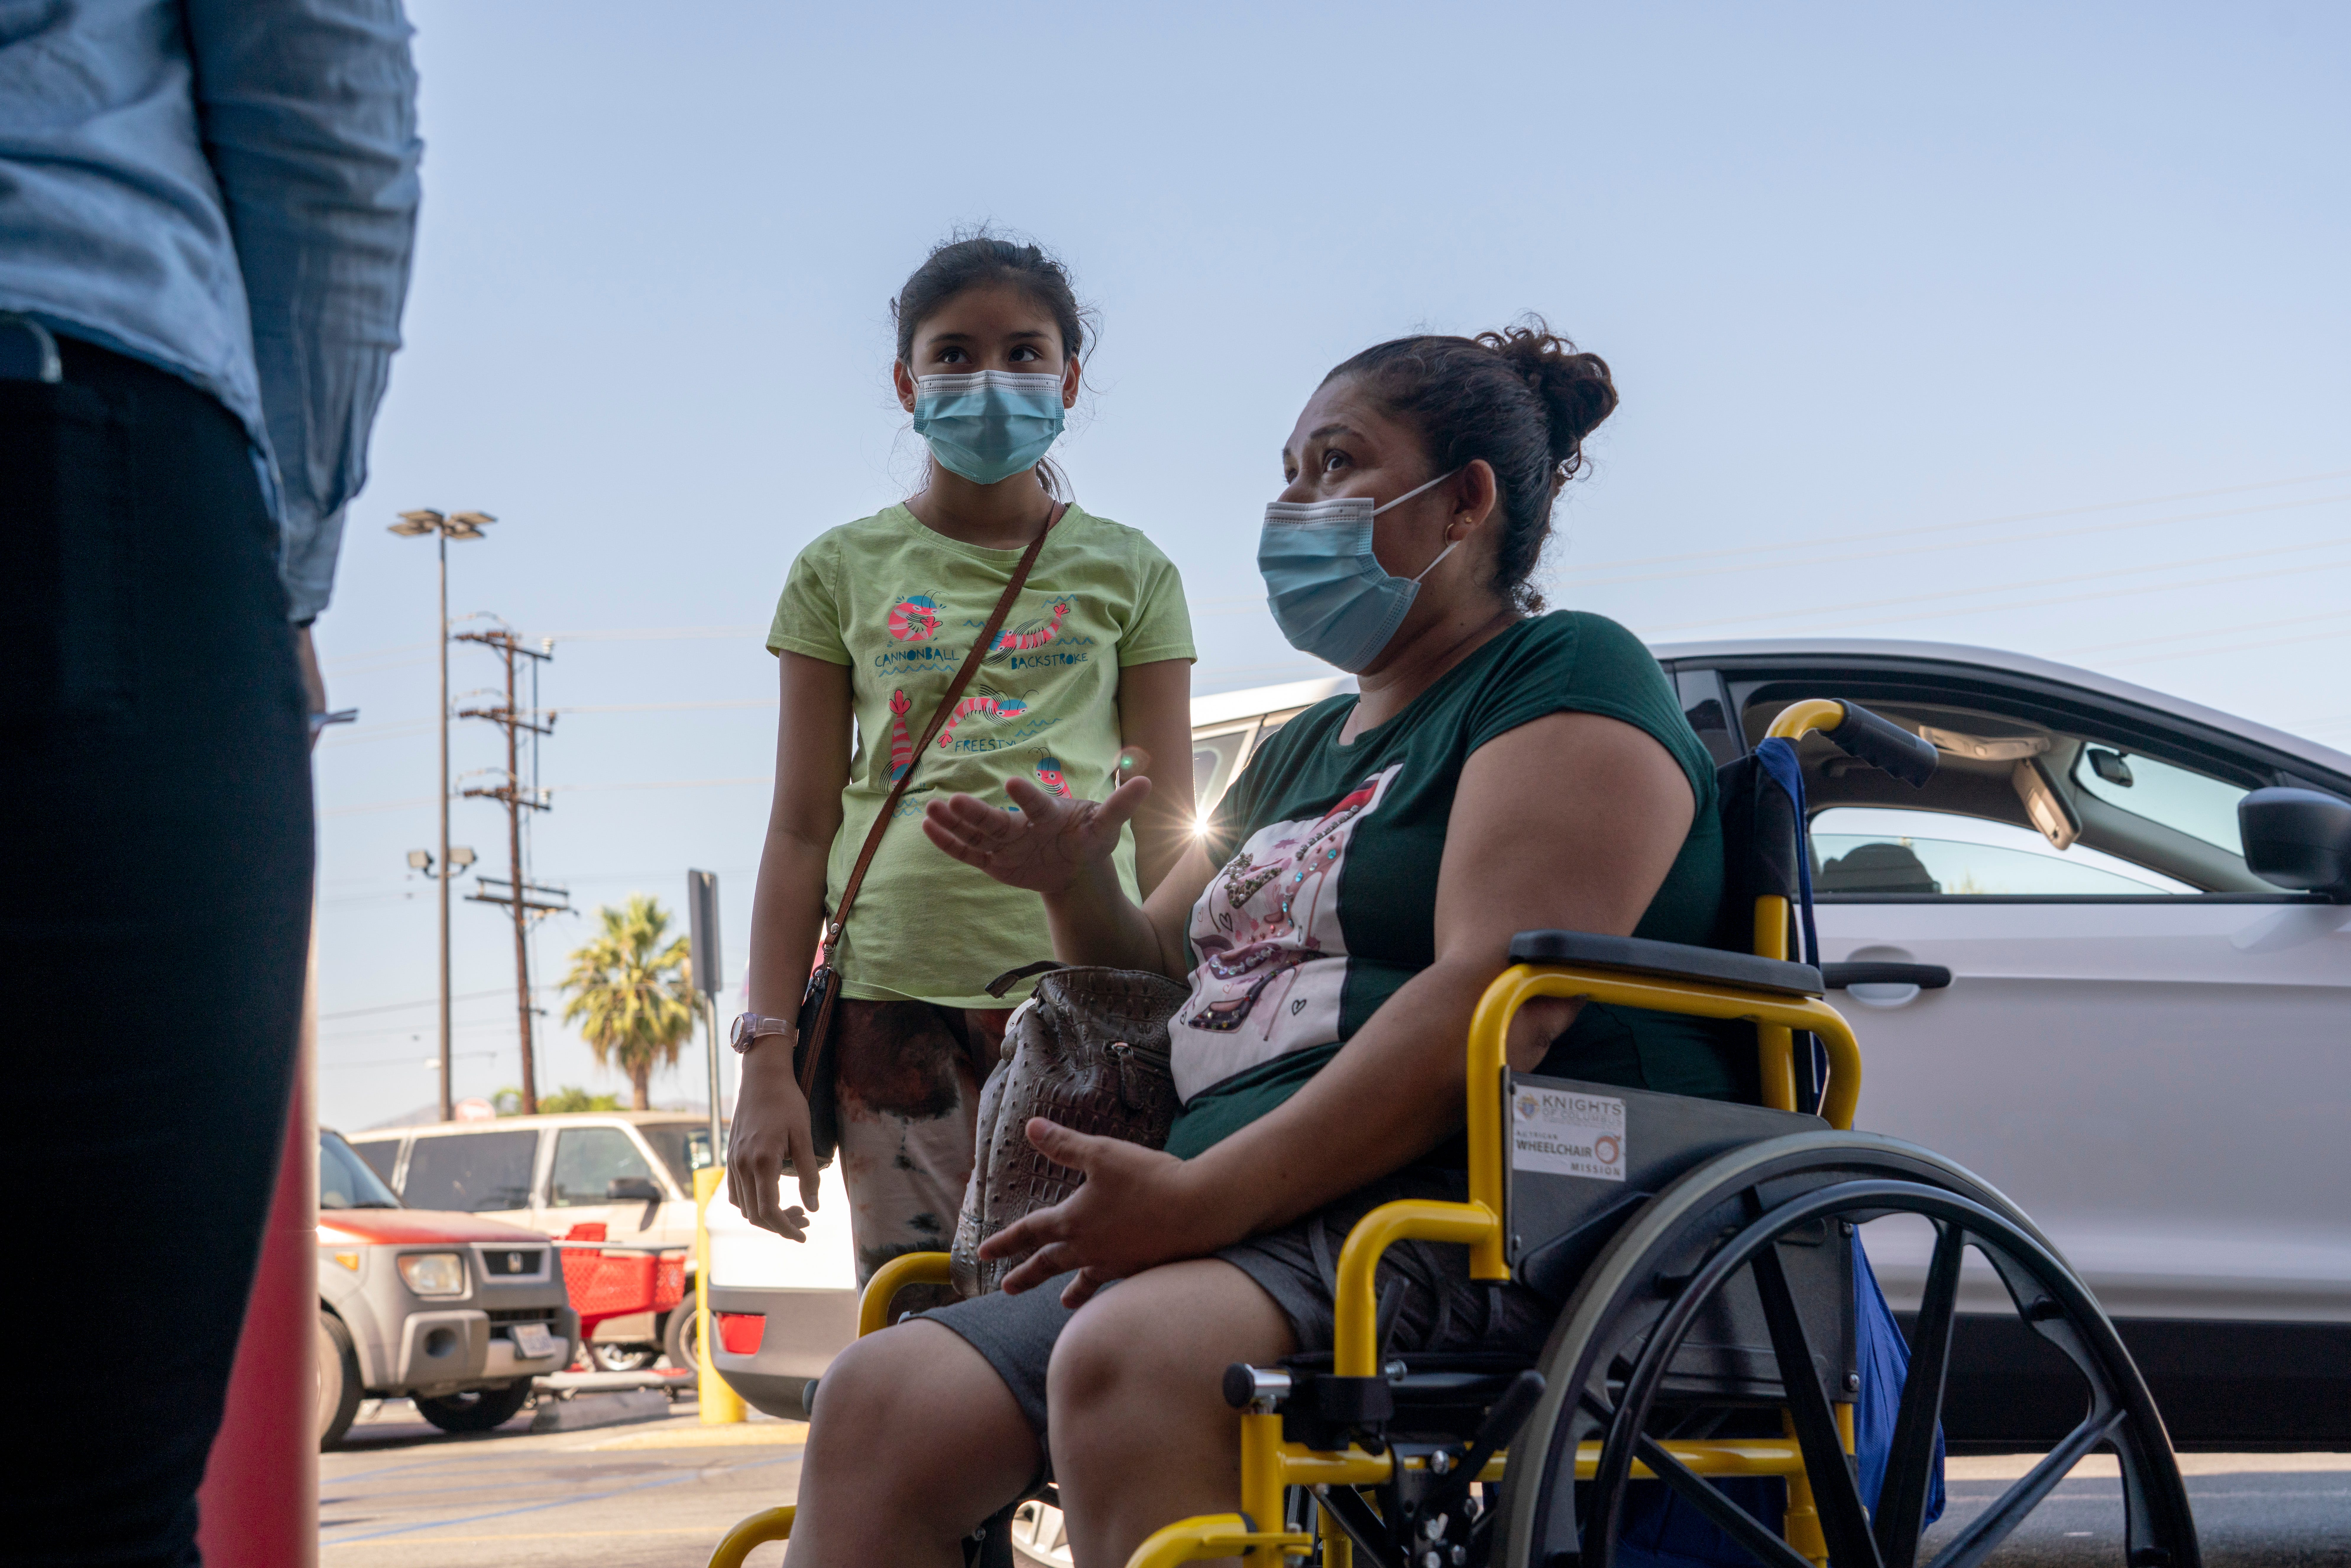 """Edia Cordero and her daughter Jasmin, 11, talk with community organizers outside a Target store in Pacoima last week. Cordero, who is unvaccinated, says she would get her daughter vaccinated if Los Angeles schools require it. """"As a mom, I'd do anything to protect my daughter, and if that means getting the vaccine, I'll do it."""""""